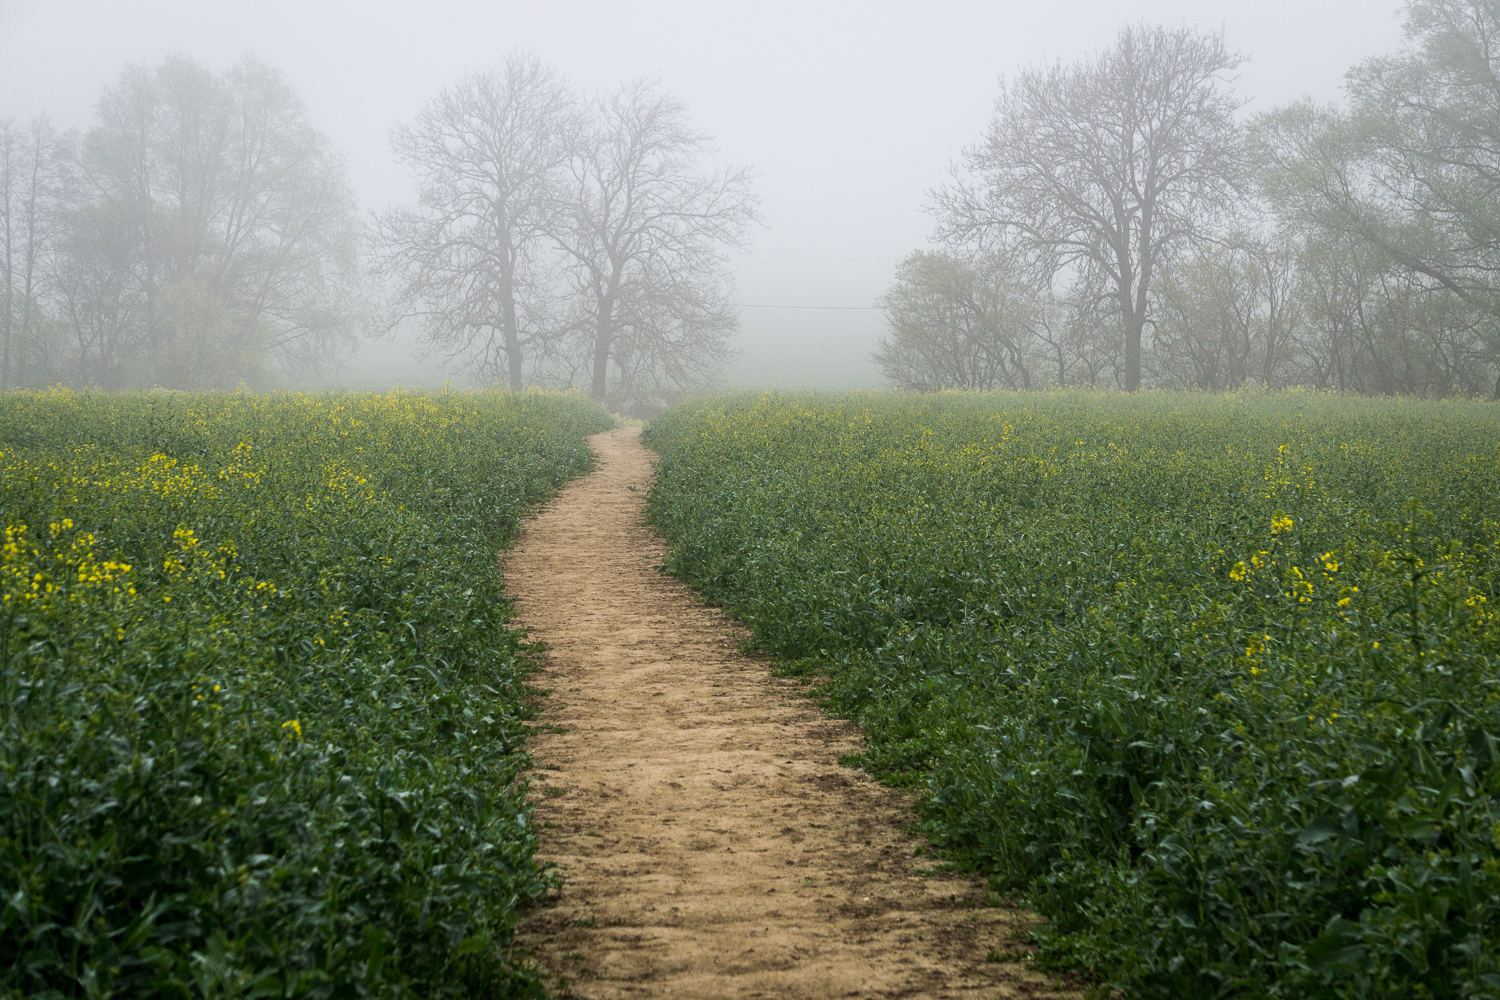 The path well travelled...into the mist